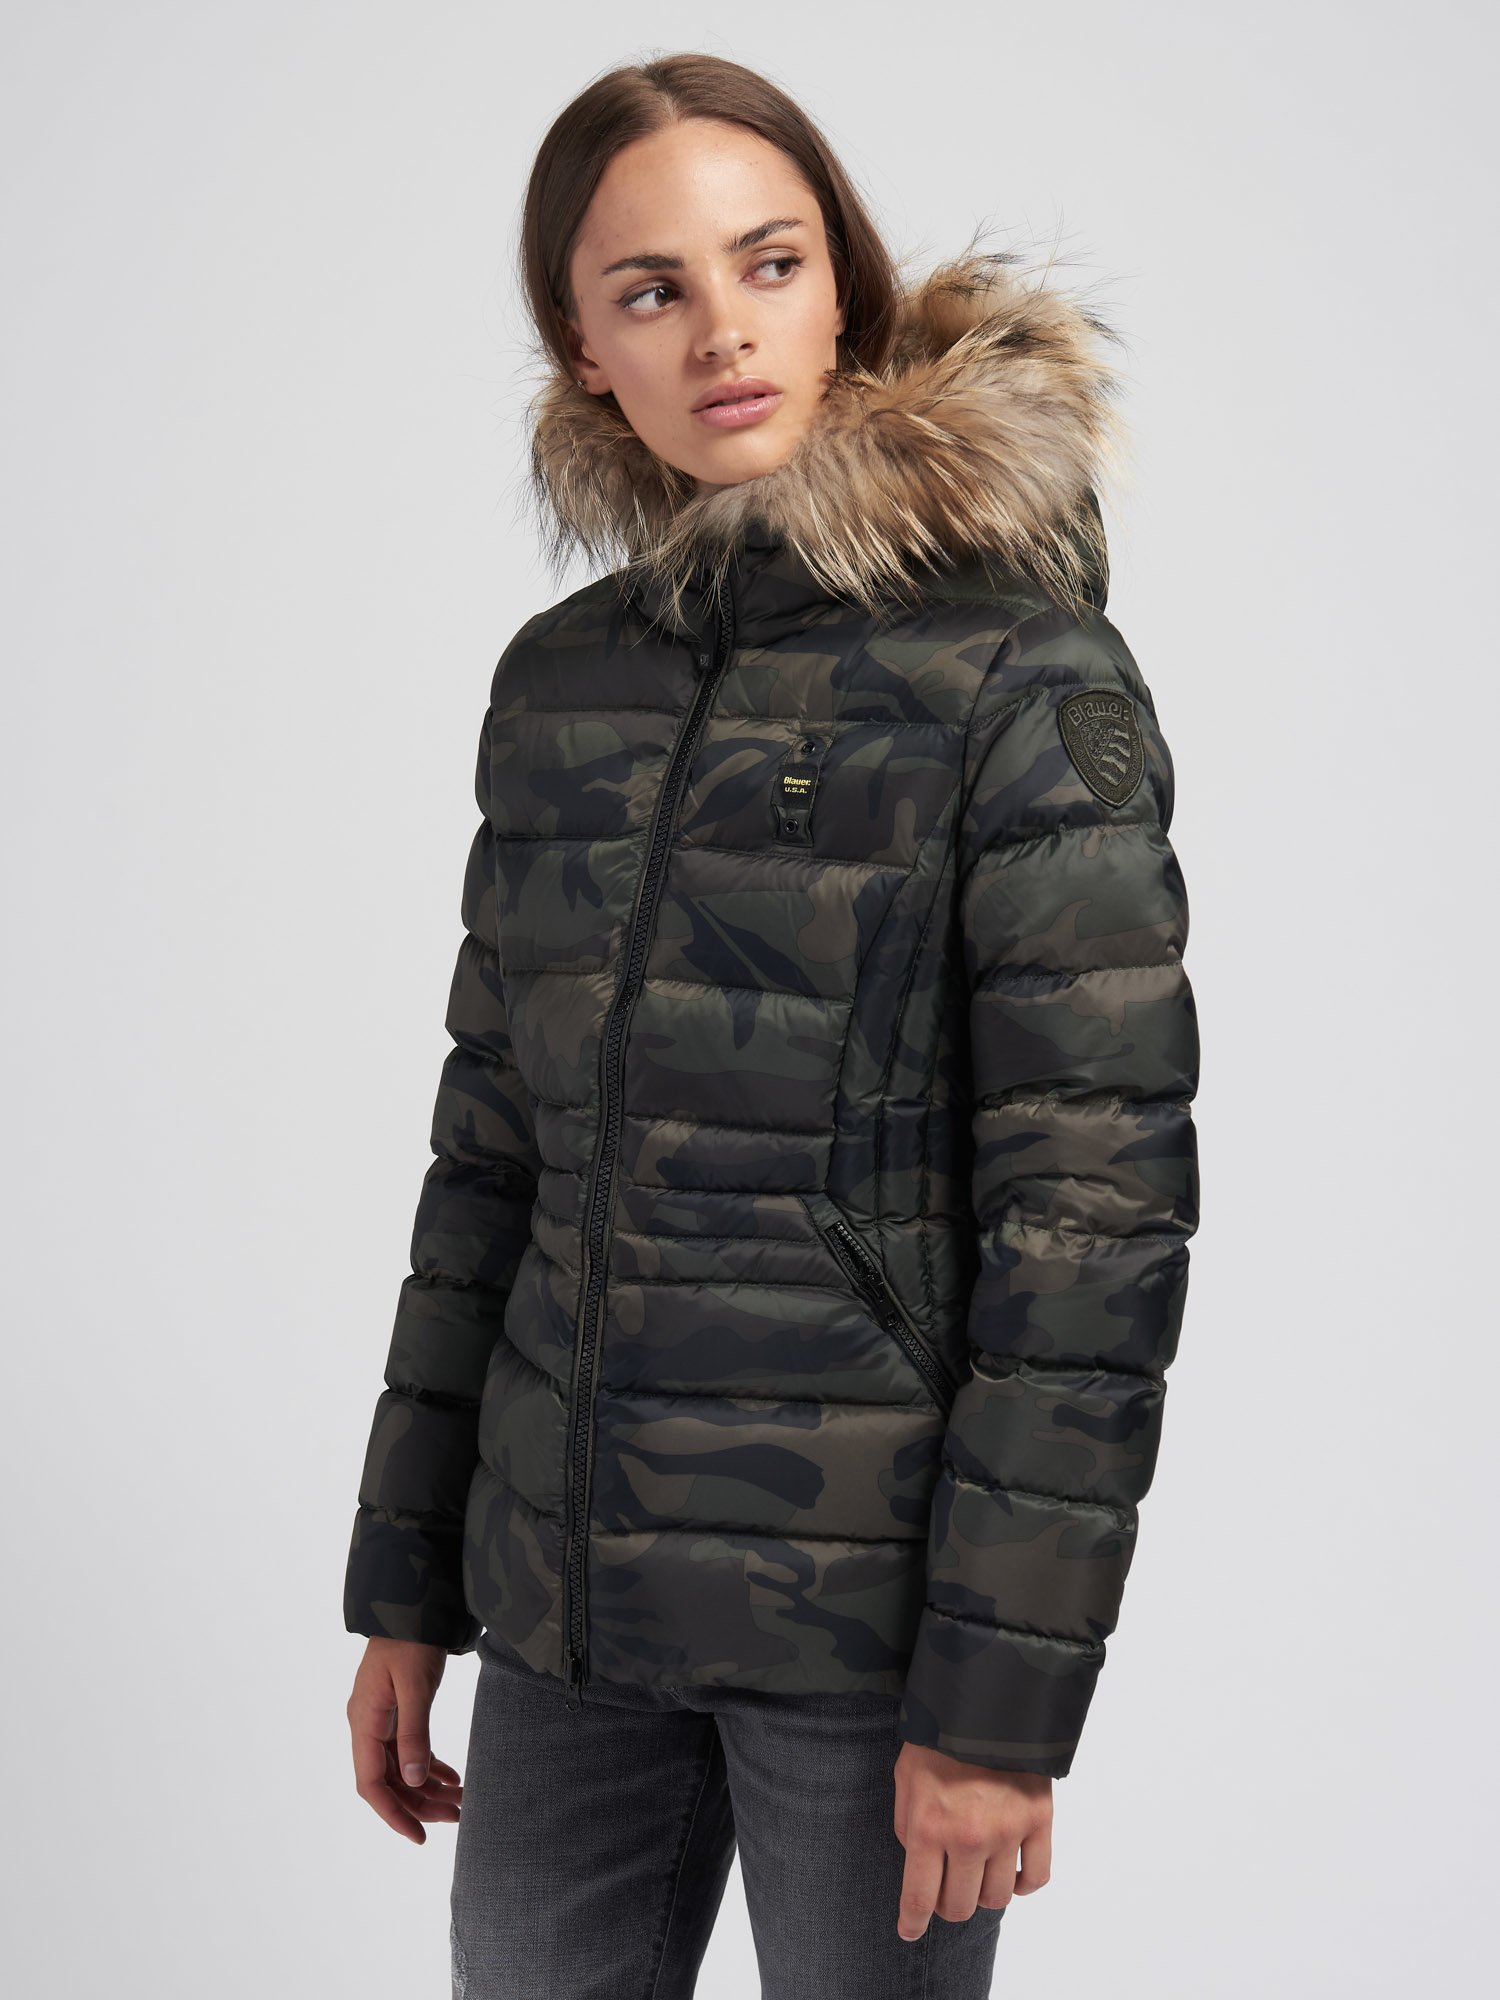 Blauer - MARTHA FLARED CAMOUFLAGE DOWN JACKET - Green Forest - Blauer